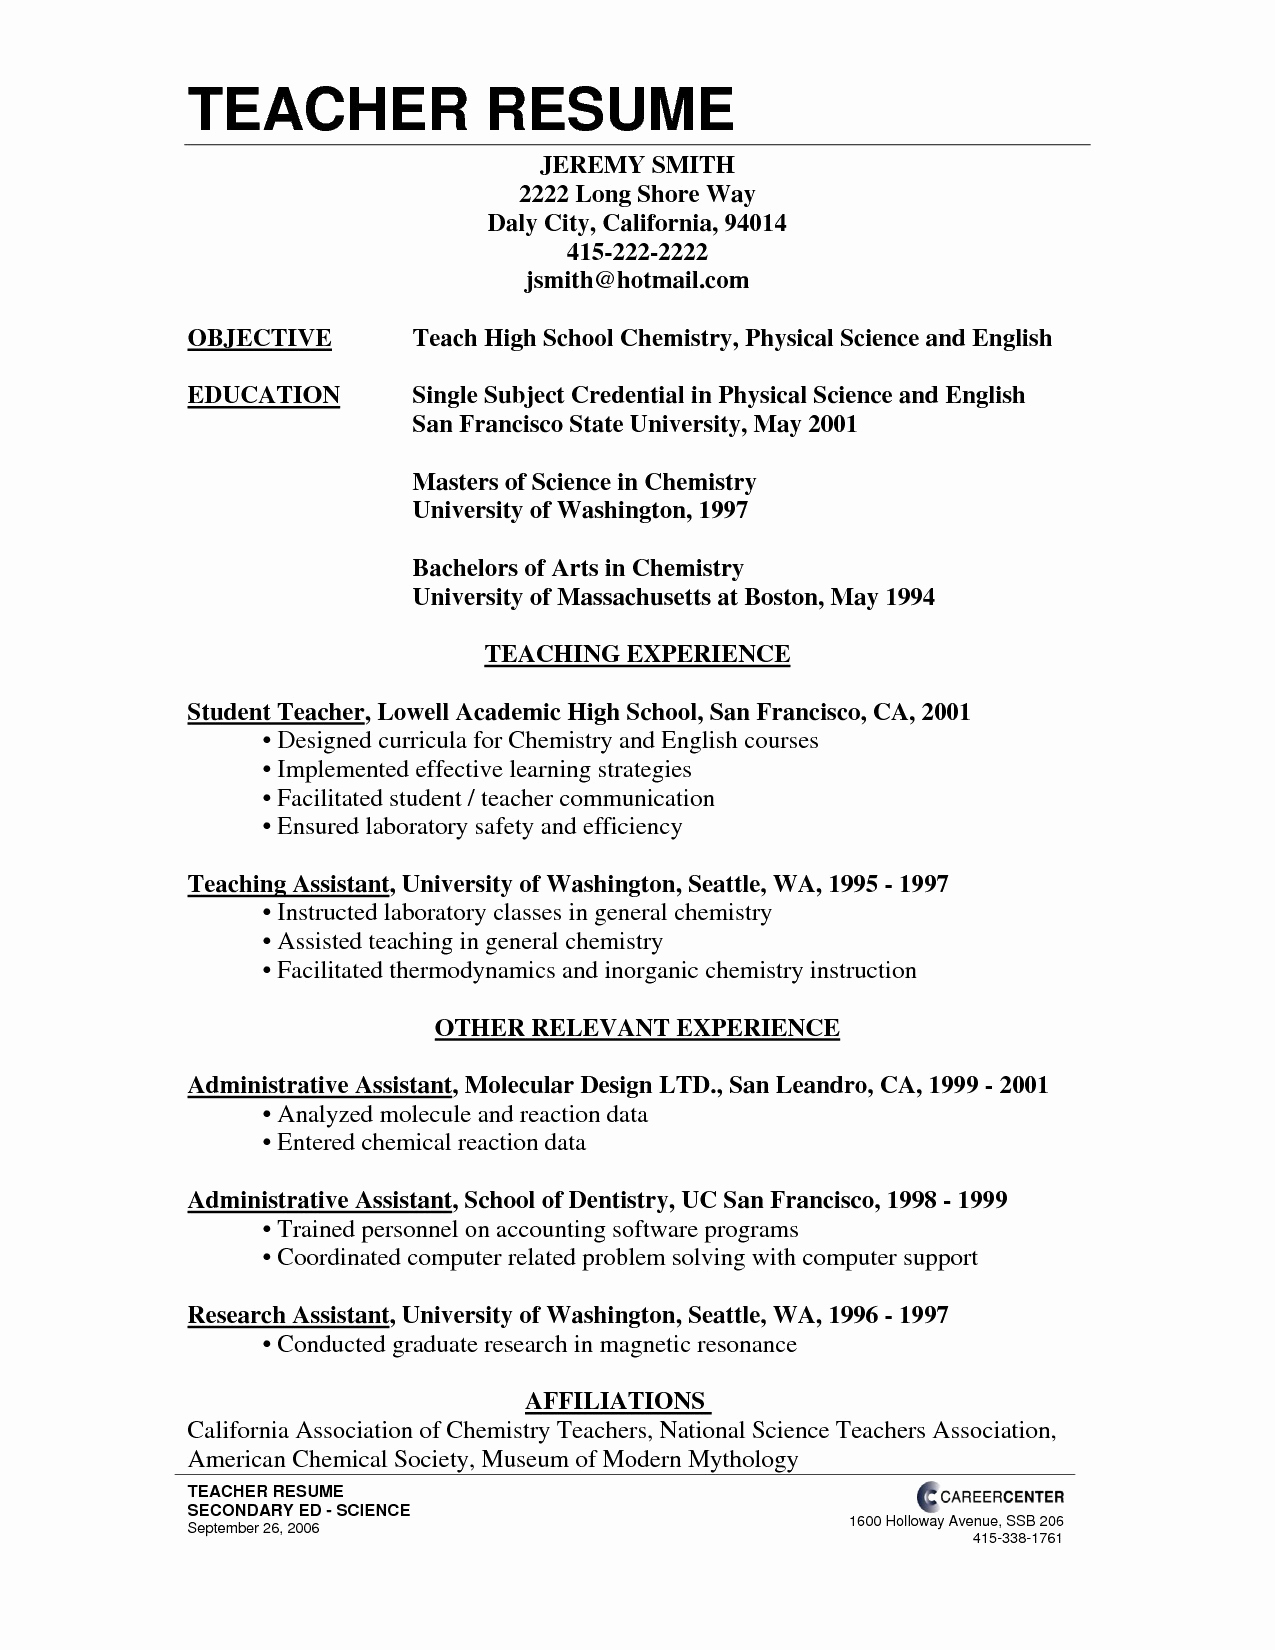 Cover Letter Template Accounting - Resume Cover Letter Example New Free Cover Letter Templates Examples